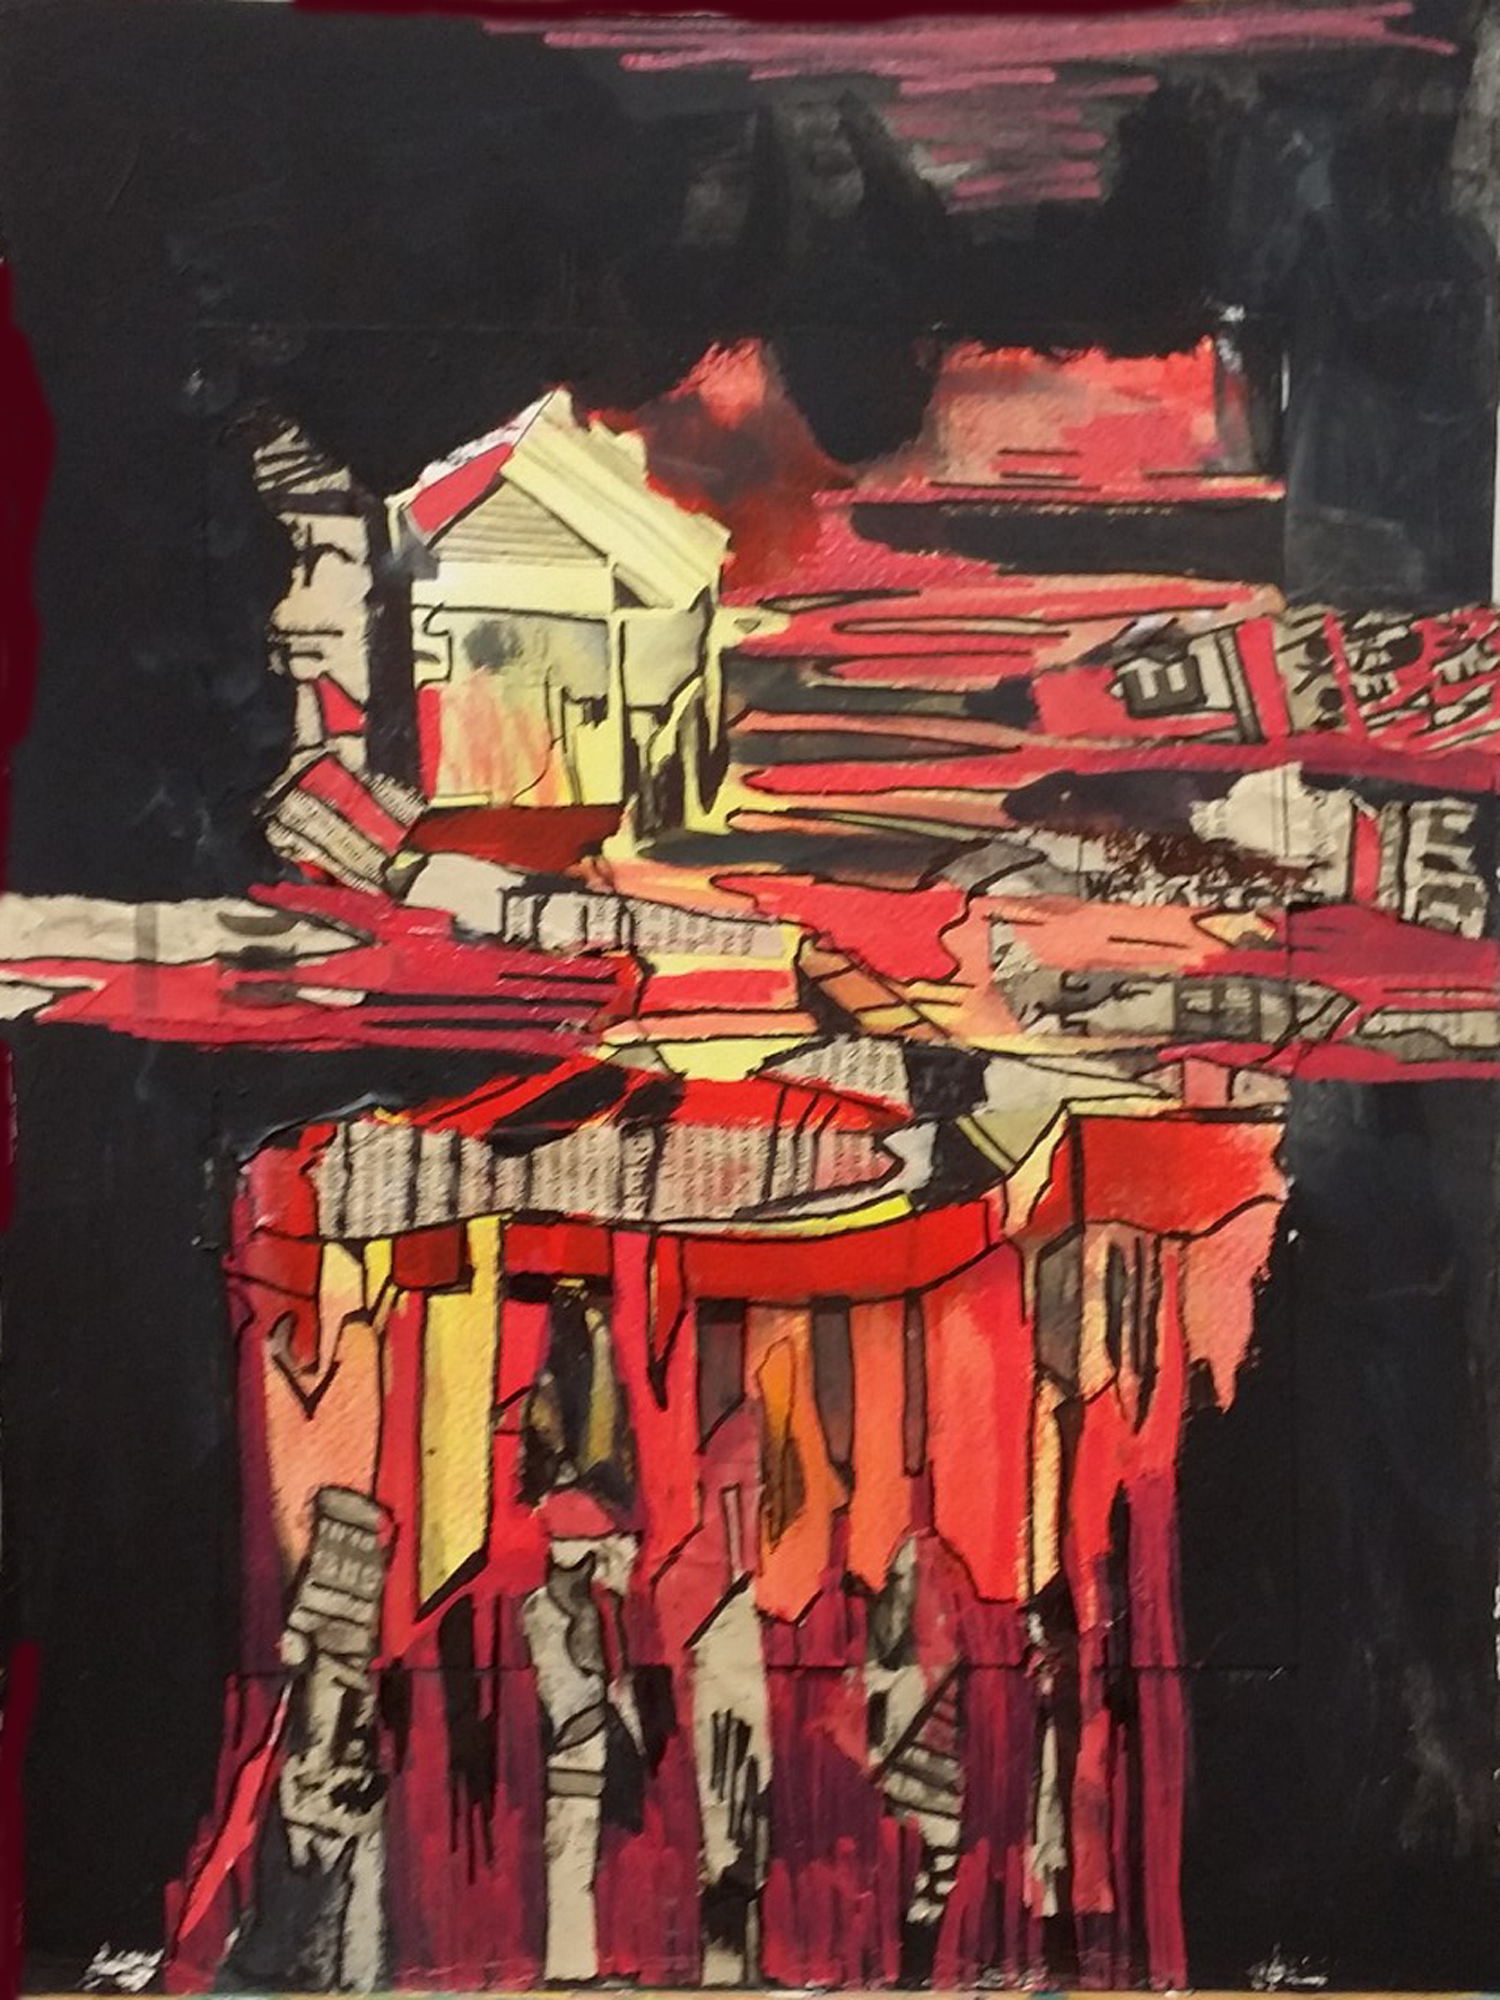 SOLD, Newspaper collage, acrylic and watercolor paint, marker on paper